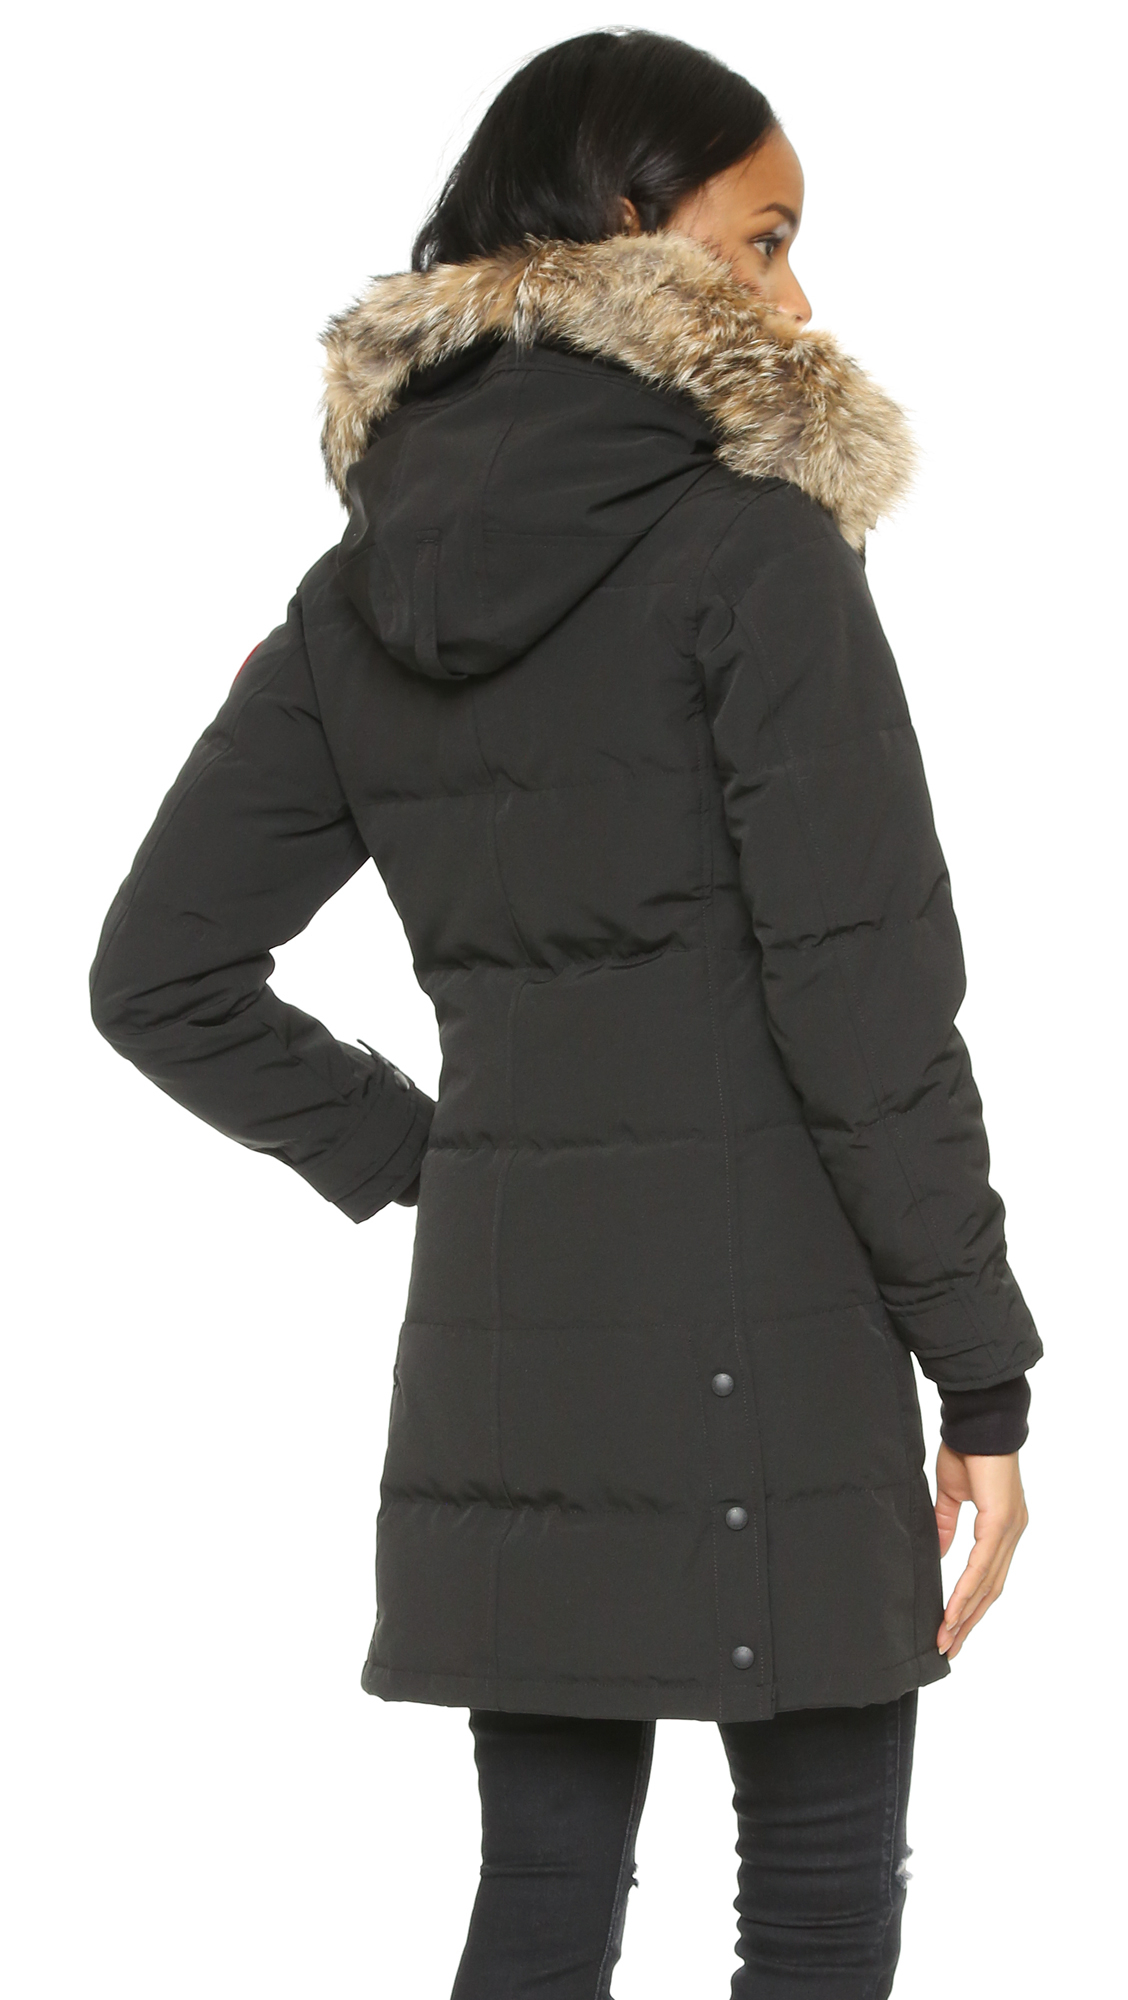 5a414ca89673 Gallery. Previously sold at: REVOLVE, Shopbop · Women's Canada Goose  Shelburne